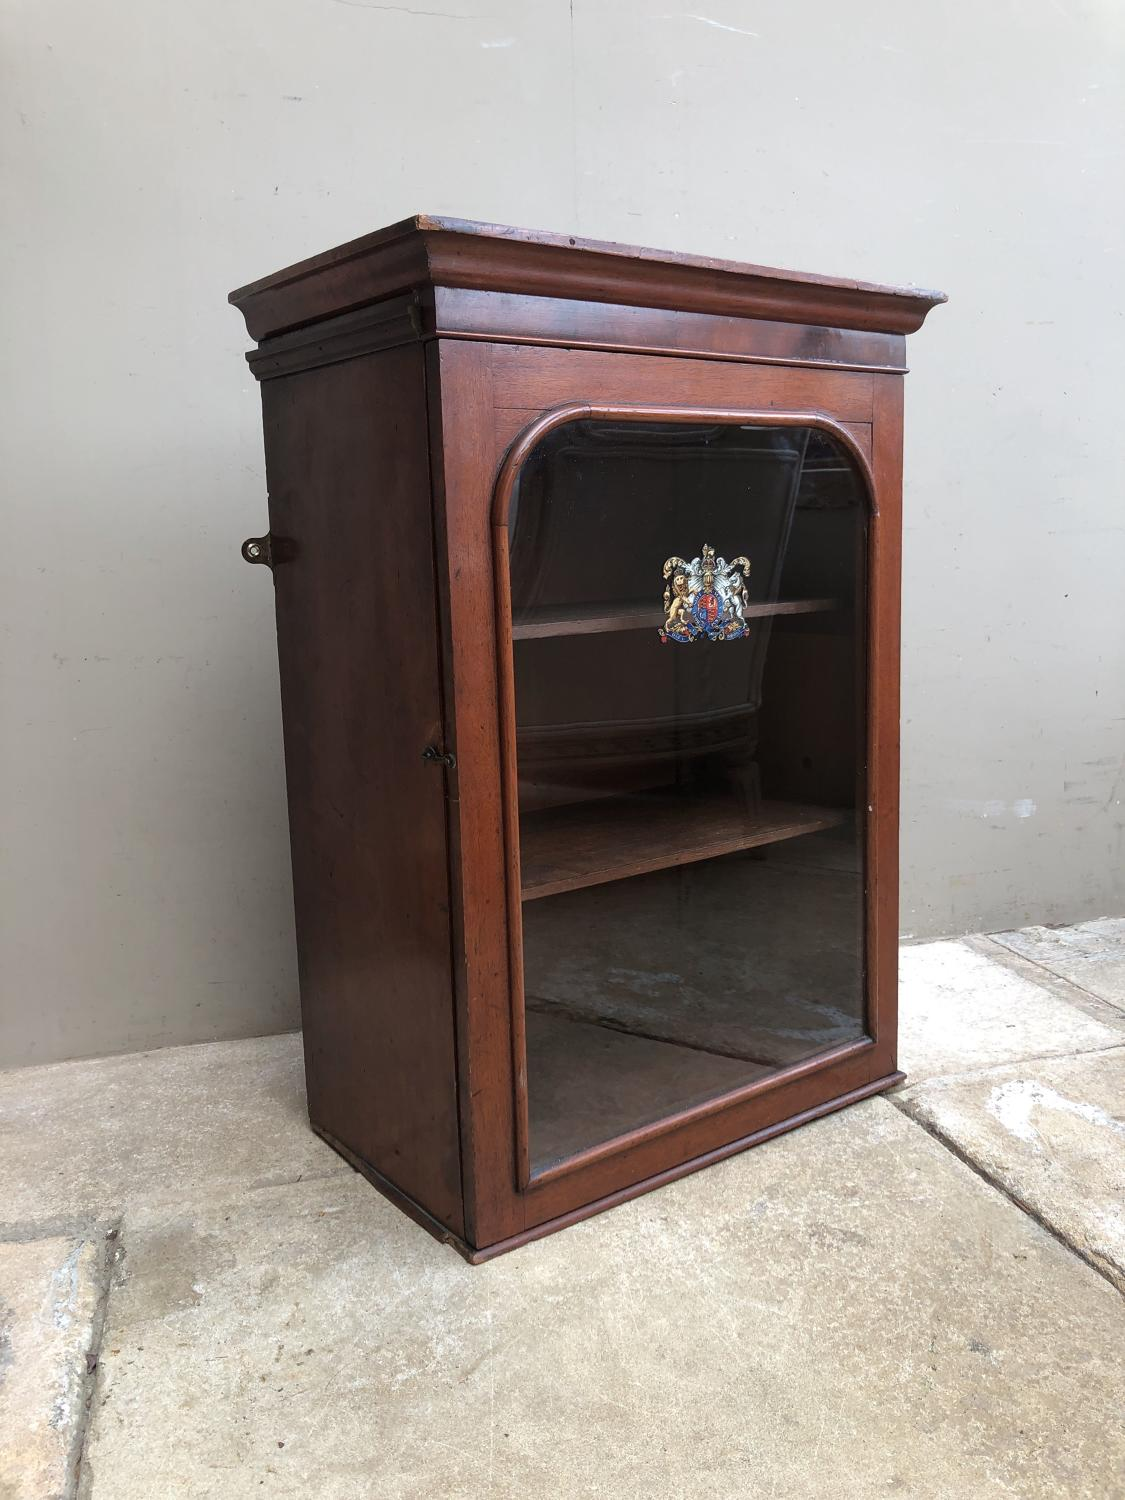 Late Victorian Shops Display Cabinet with Royal Warrant Crest to Door.